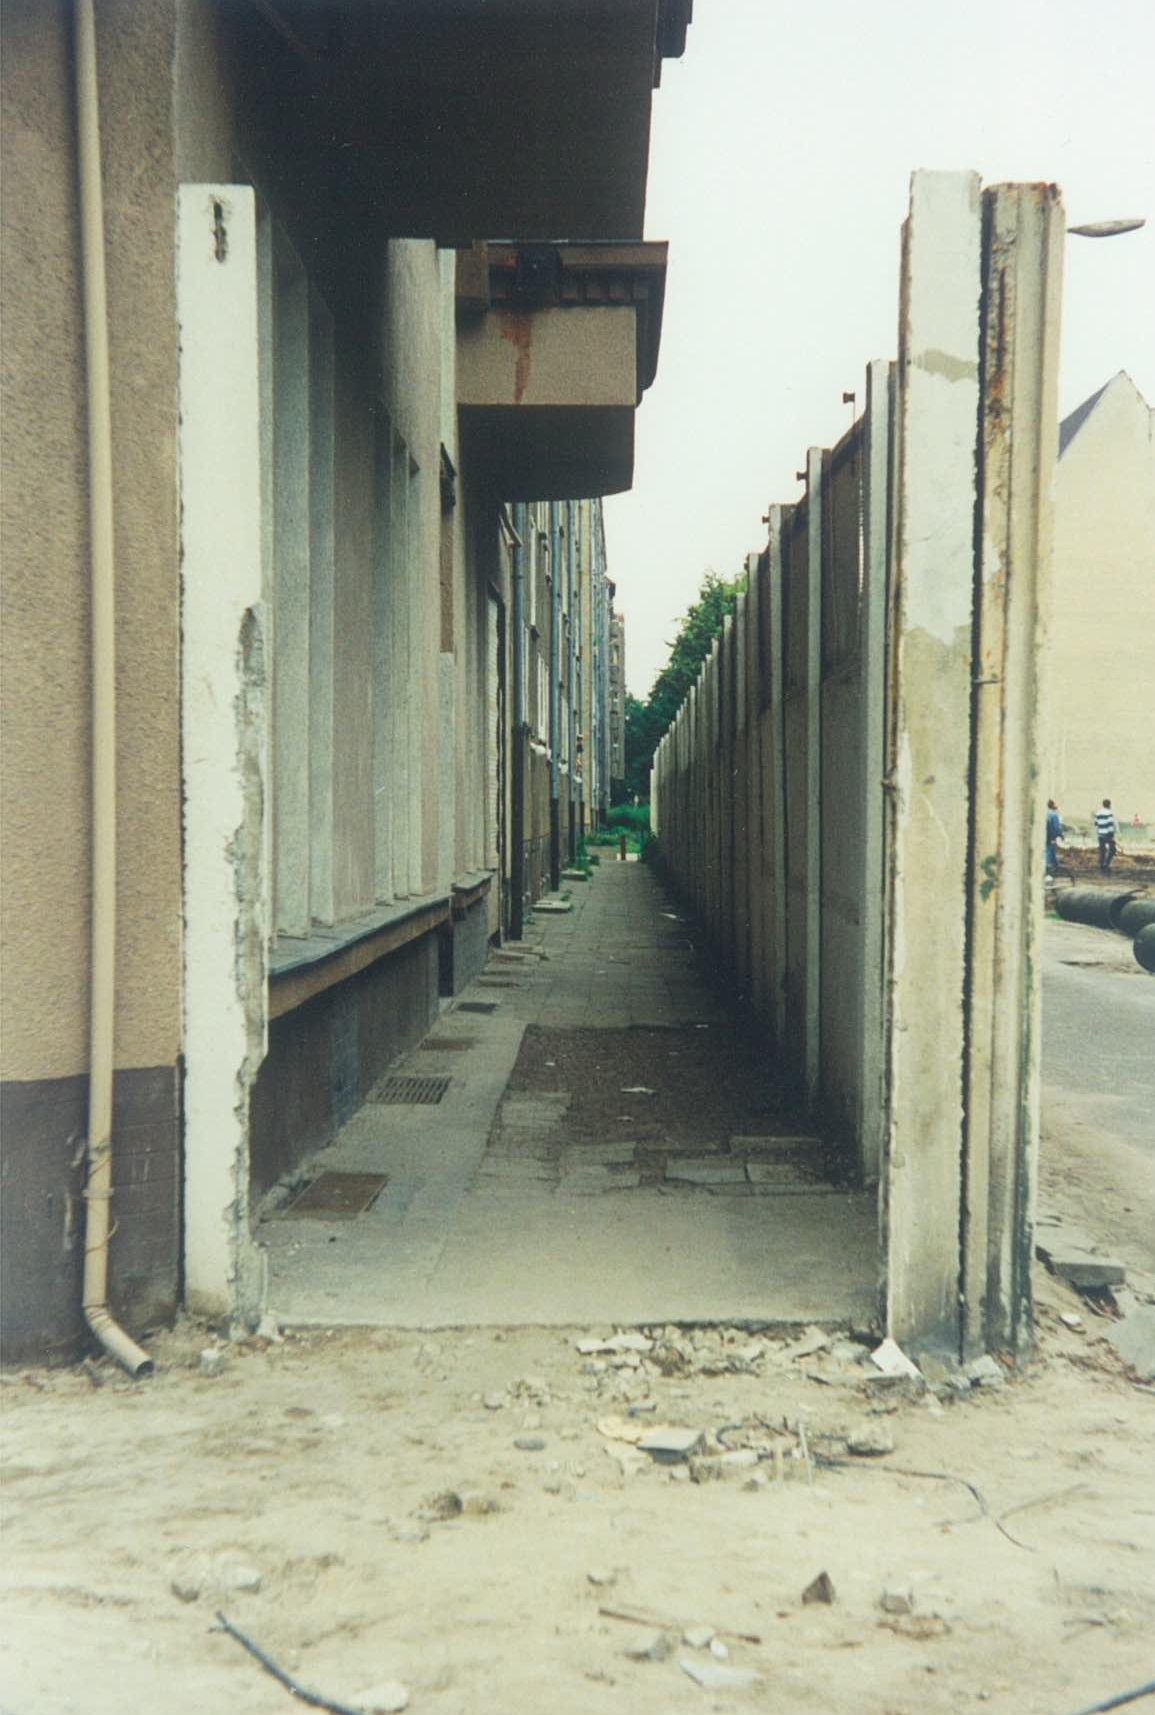 The Wall stood a mere 1.5 meters from the Neumann's front door. Photo taken ca. 1989.